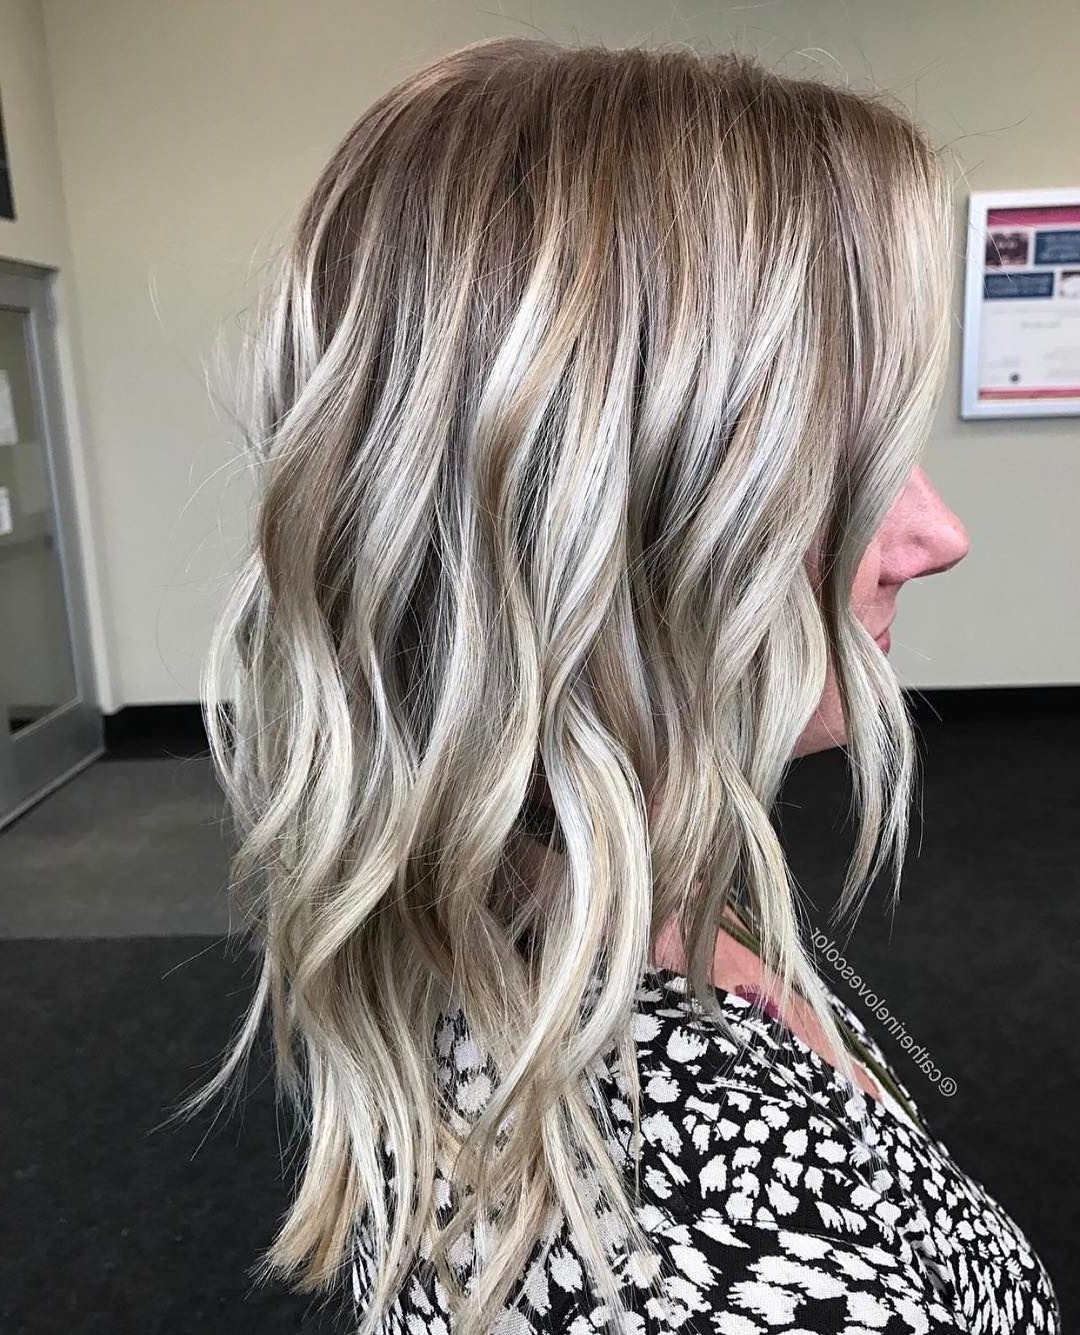 20 Adorable Ash Blonde Hairstyles To Try: Hair Color Ideas 2019 Regarding Chic Chocolate Layers Hairstyles (View 4 of 20)